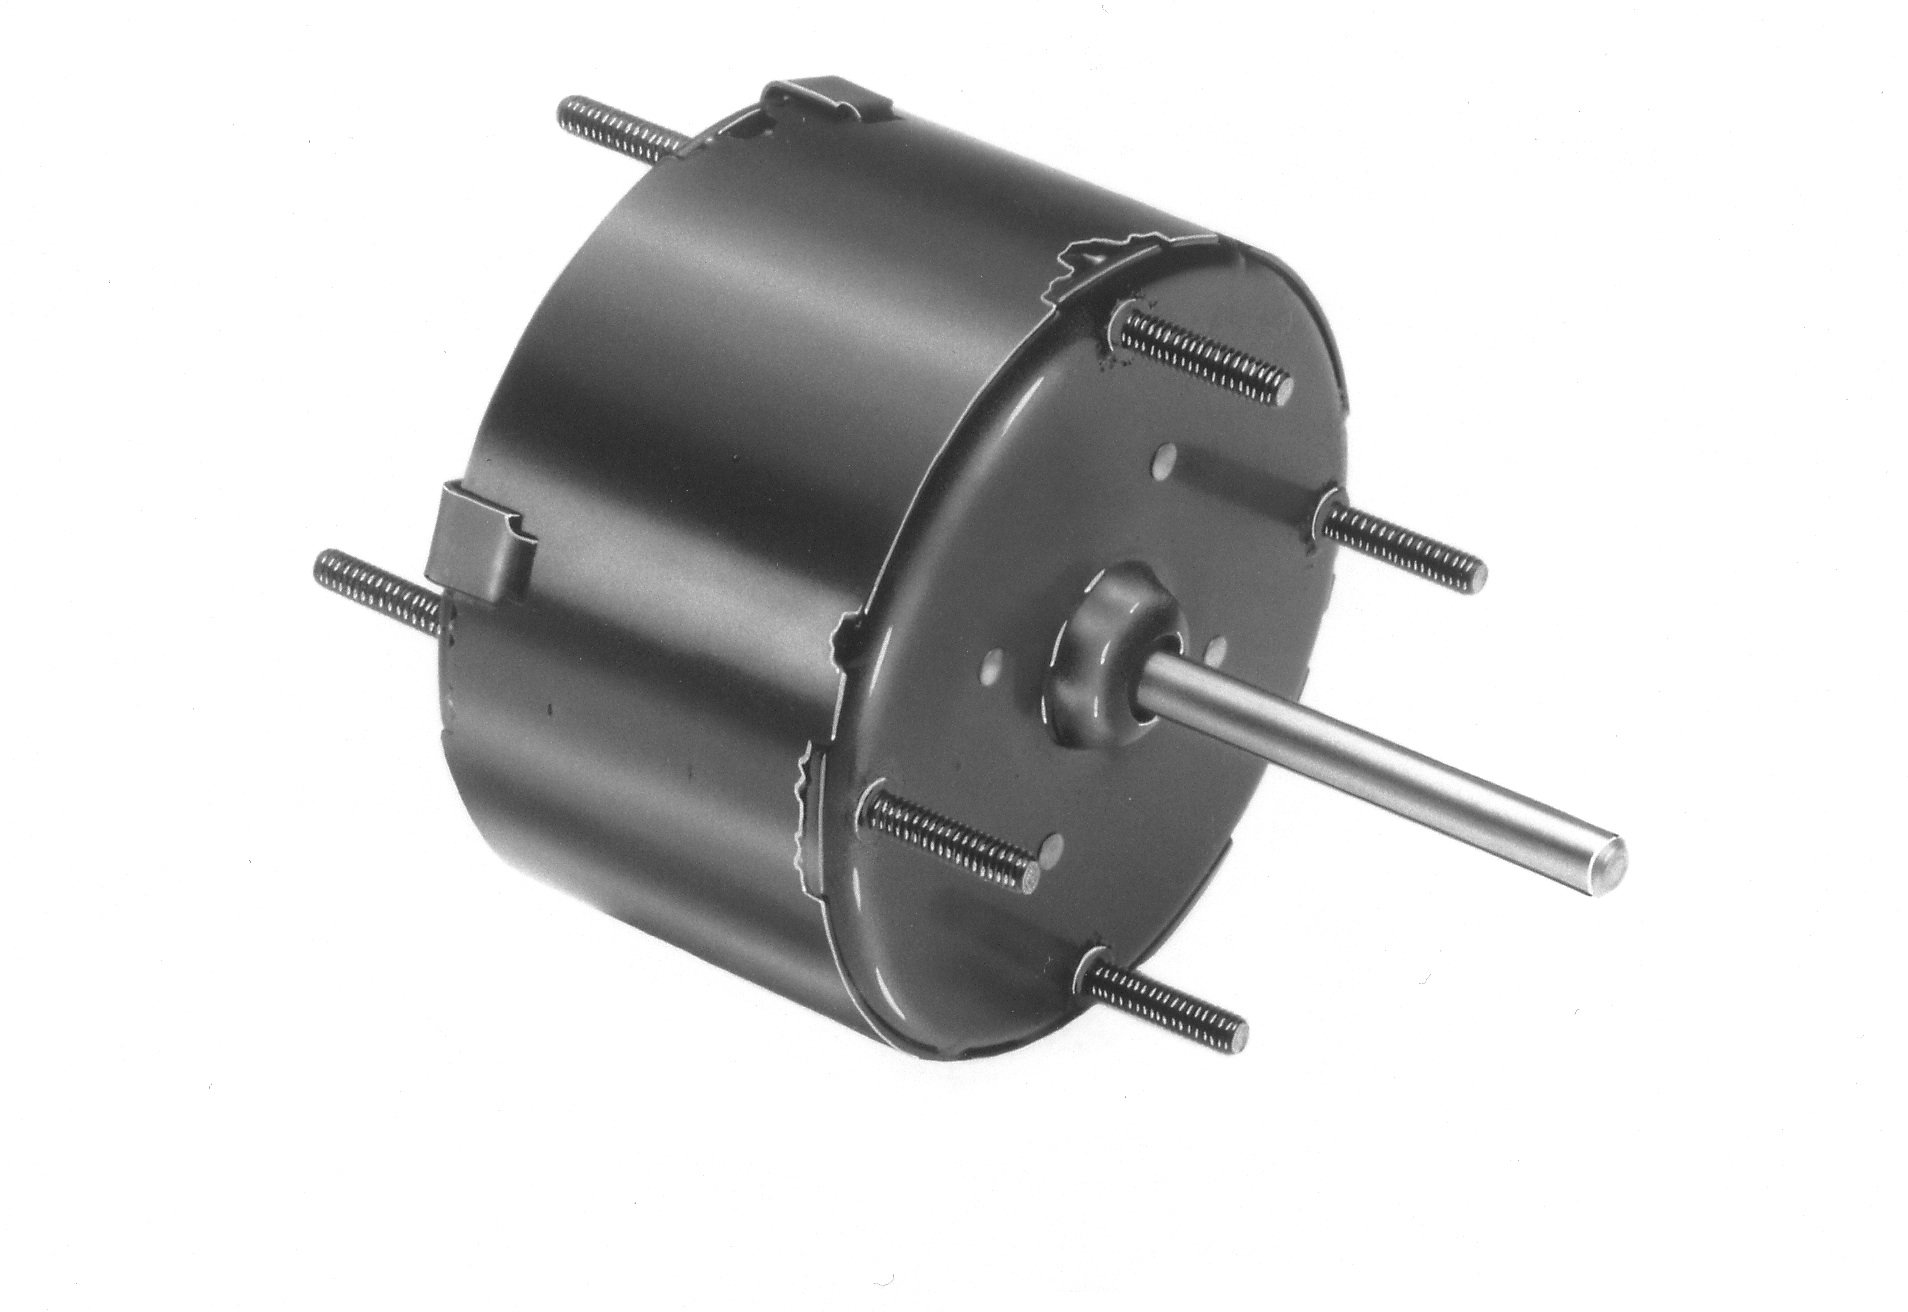 Fasco D122 3.3'' Frame Totally Enclosed Shaded Pole General Purpose Motor with Sleeve Bearing, 1/80HP, 1500rpm, 115V, 60Hz, 0.6 amps, CW Rotation